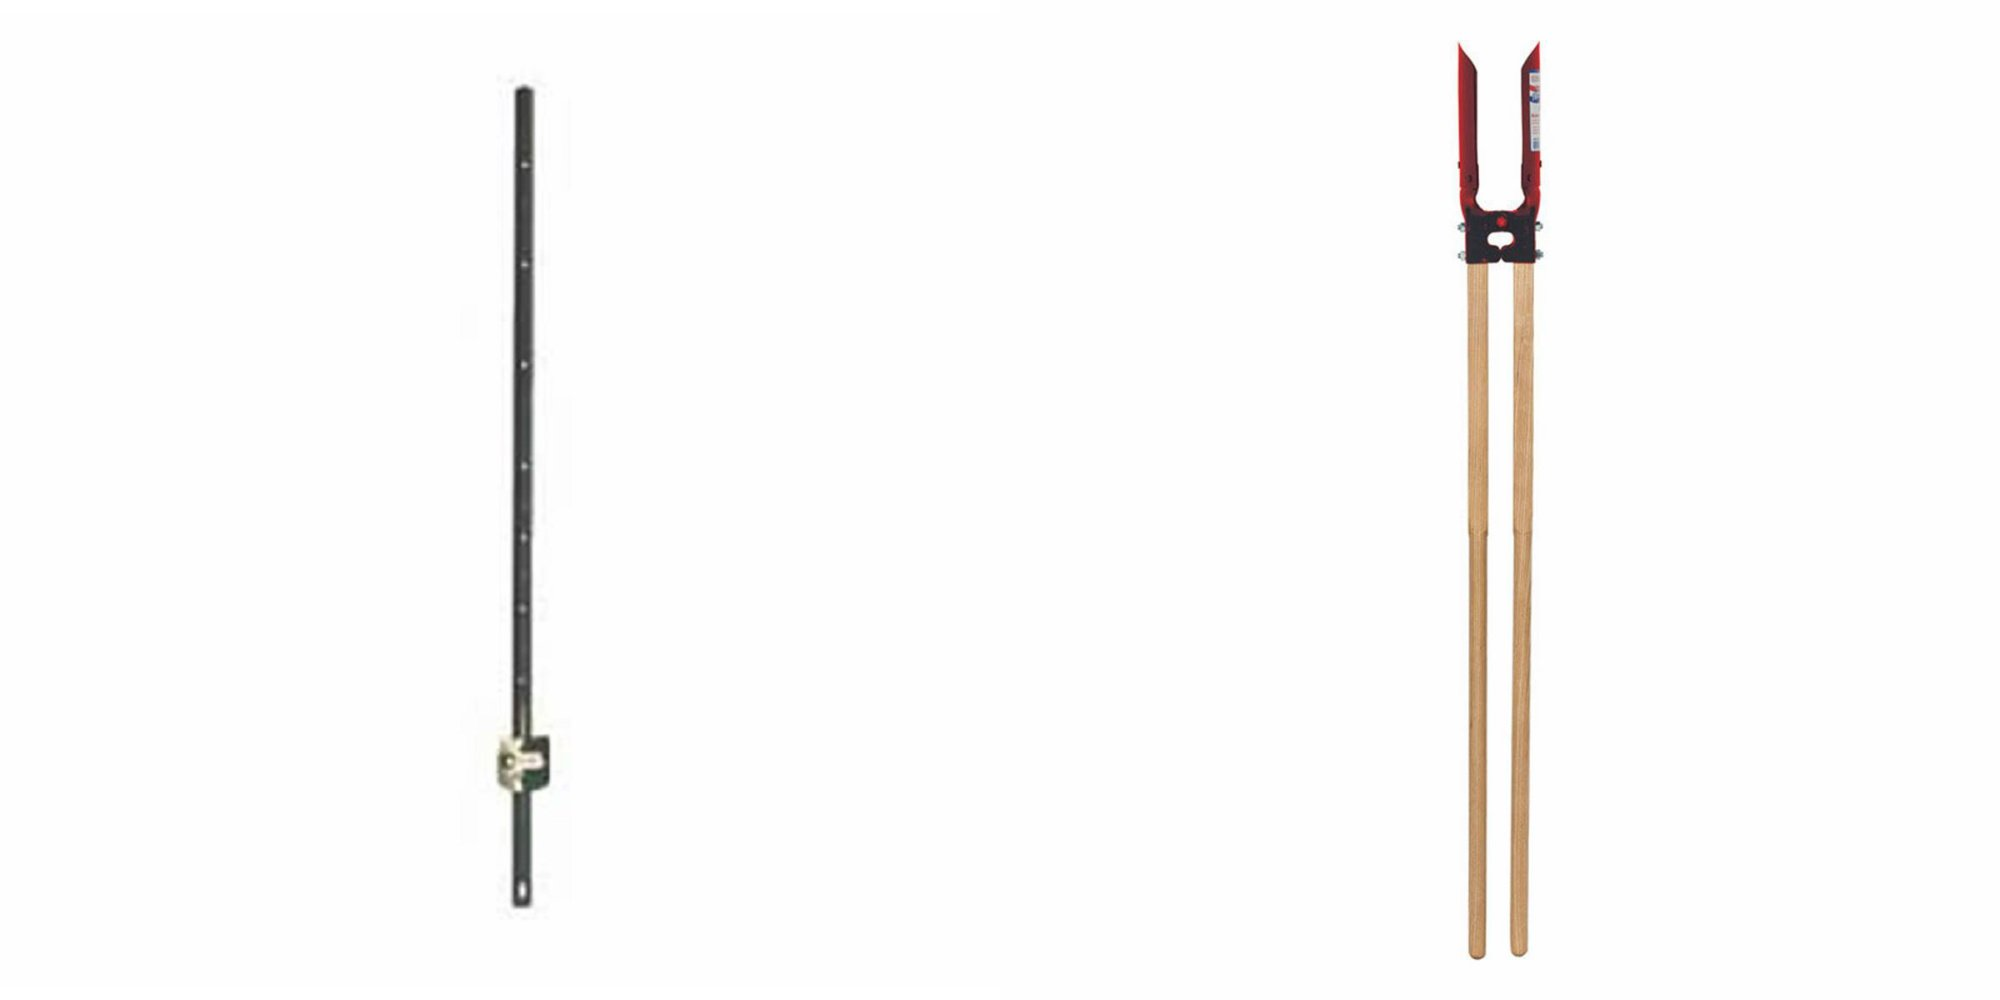 Set of 10 Mazel Light Duty U-Posts + Seymour Atlas Hole Digger - Choose Lenght (4') by Mazel-Seymour